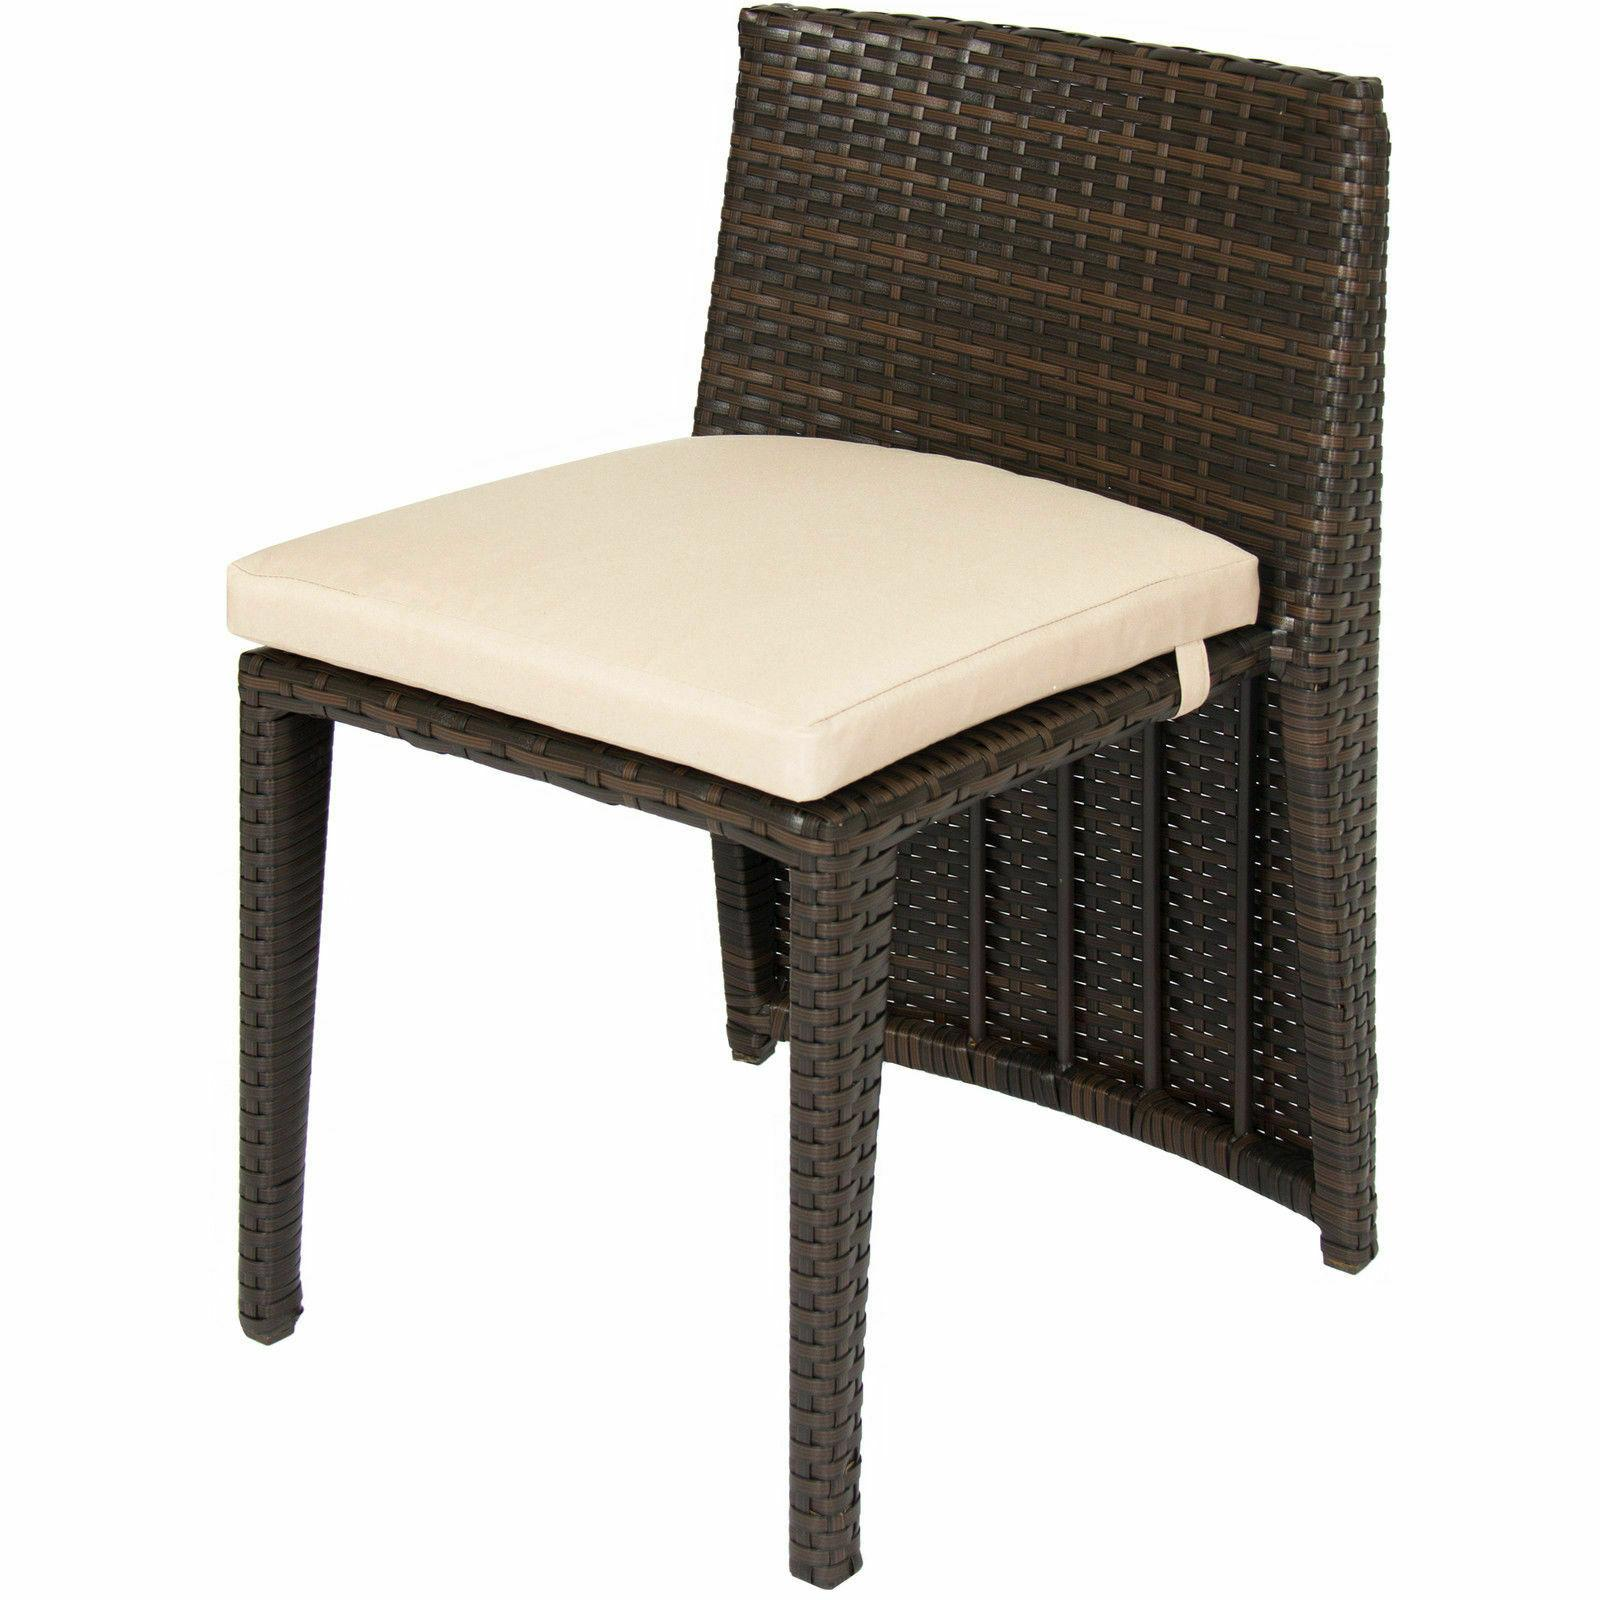 Outdoor Patio Furniture Top Chairs- Brown